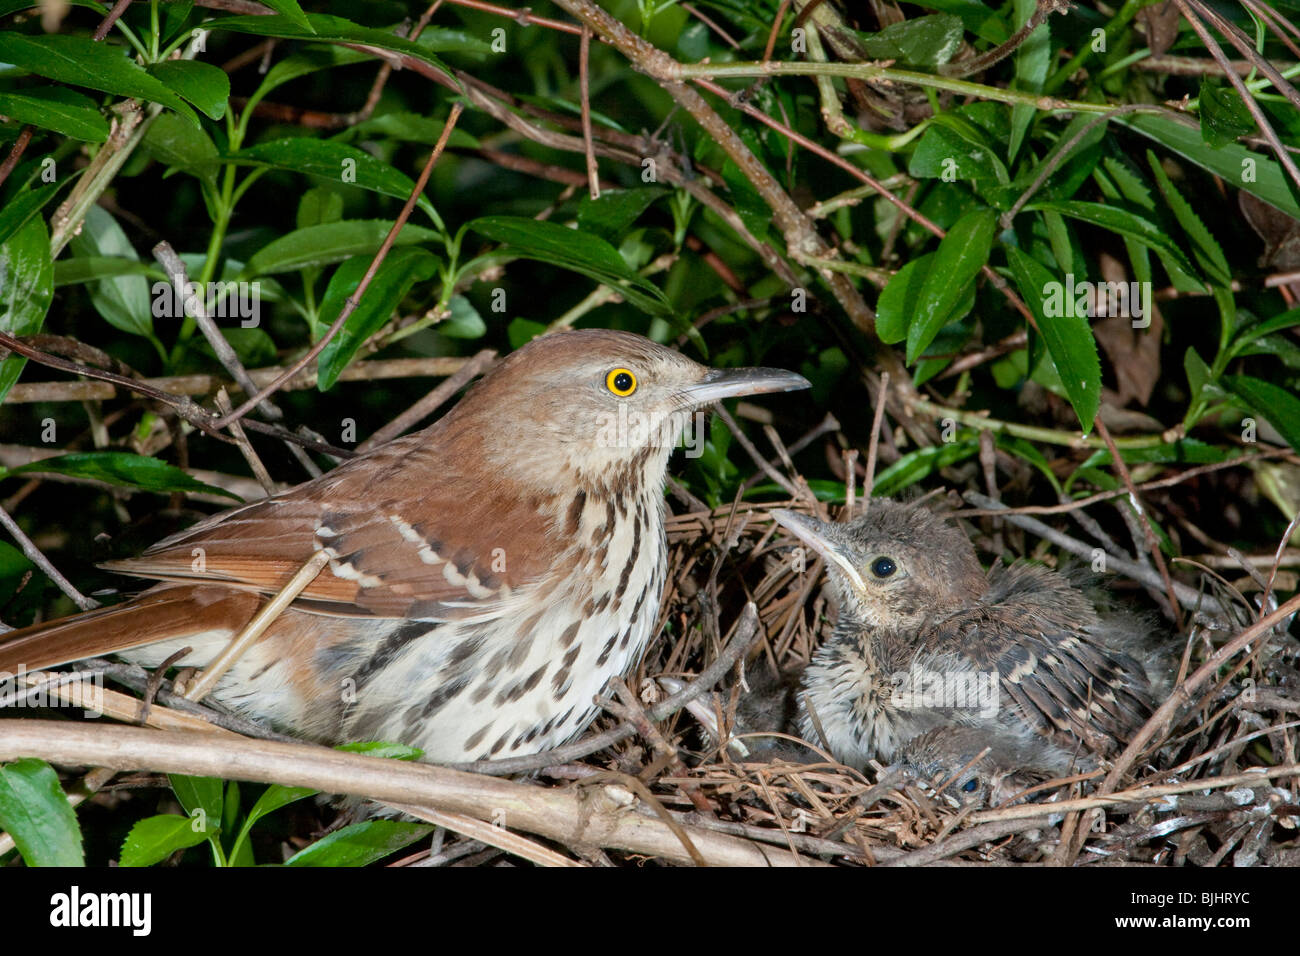 Female brown thrasher (Toxostoma rufum) near the nest. - Stock Image